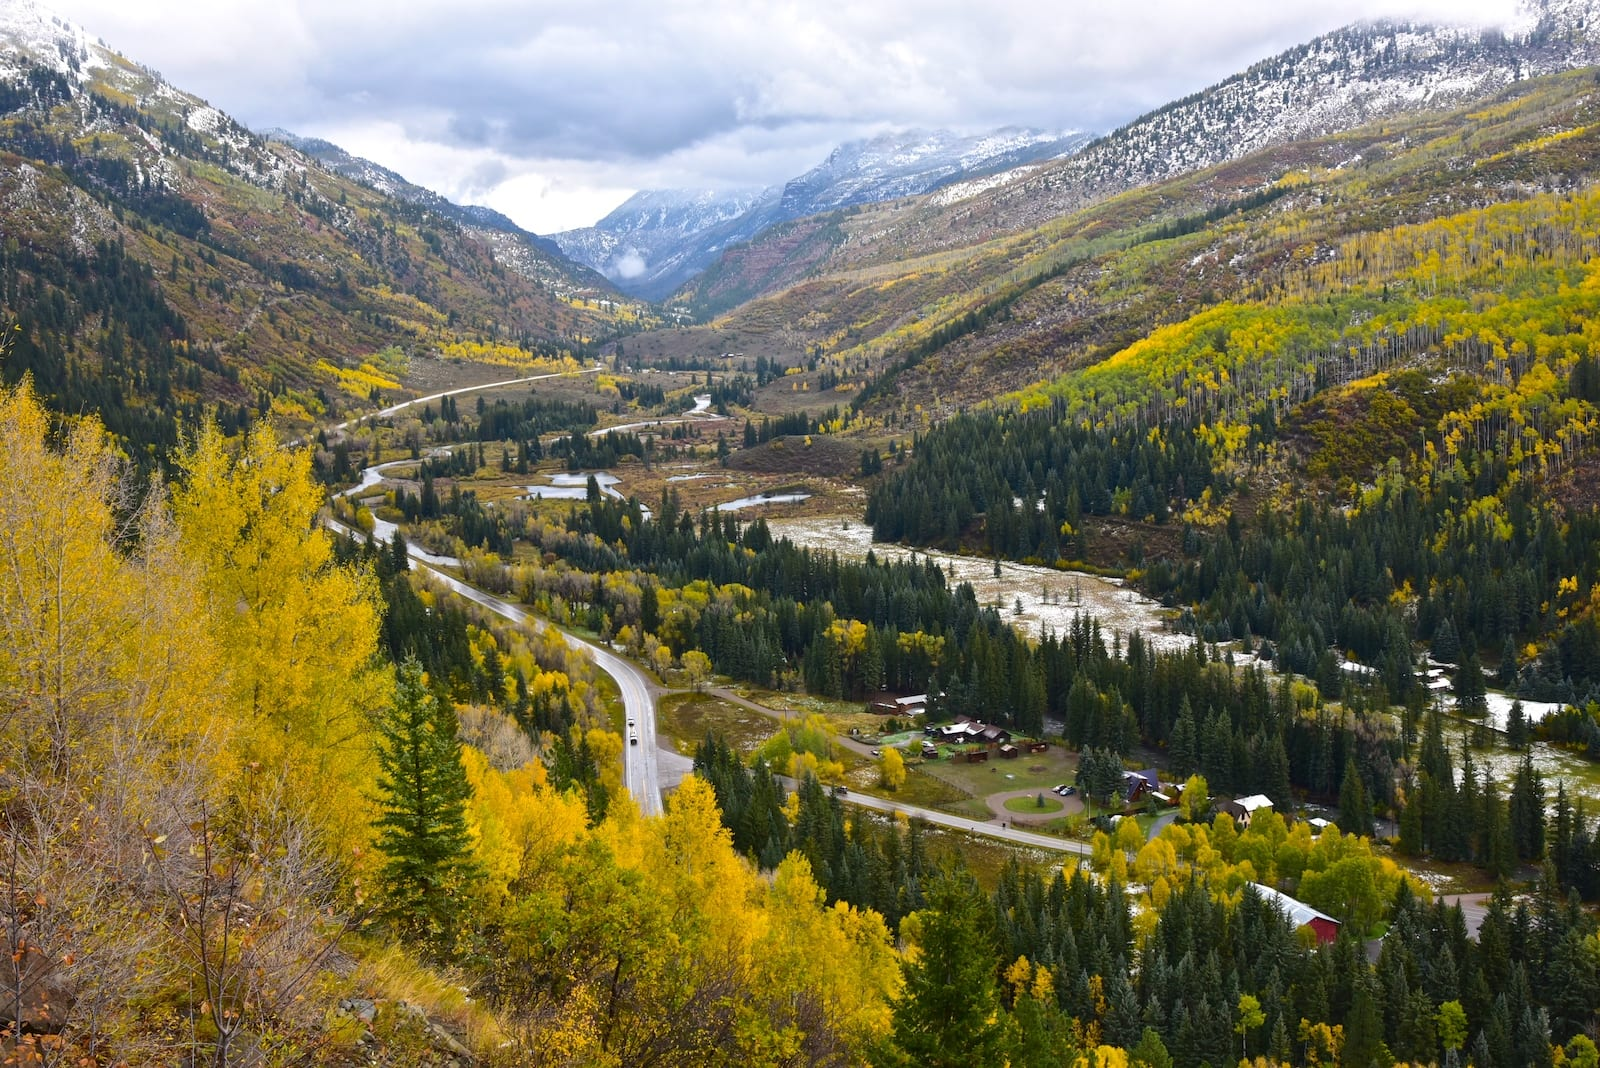 McClure Pass Colorado Valley State Highway 133 Autumn Colors